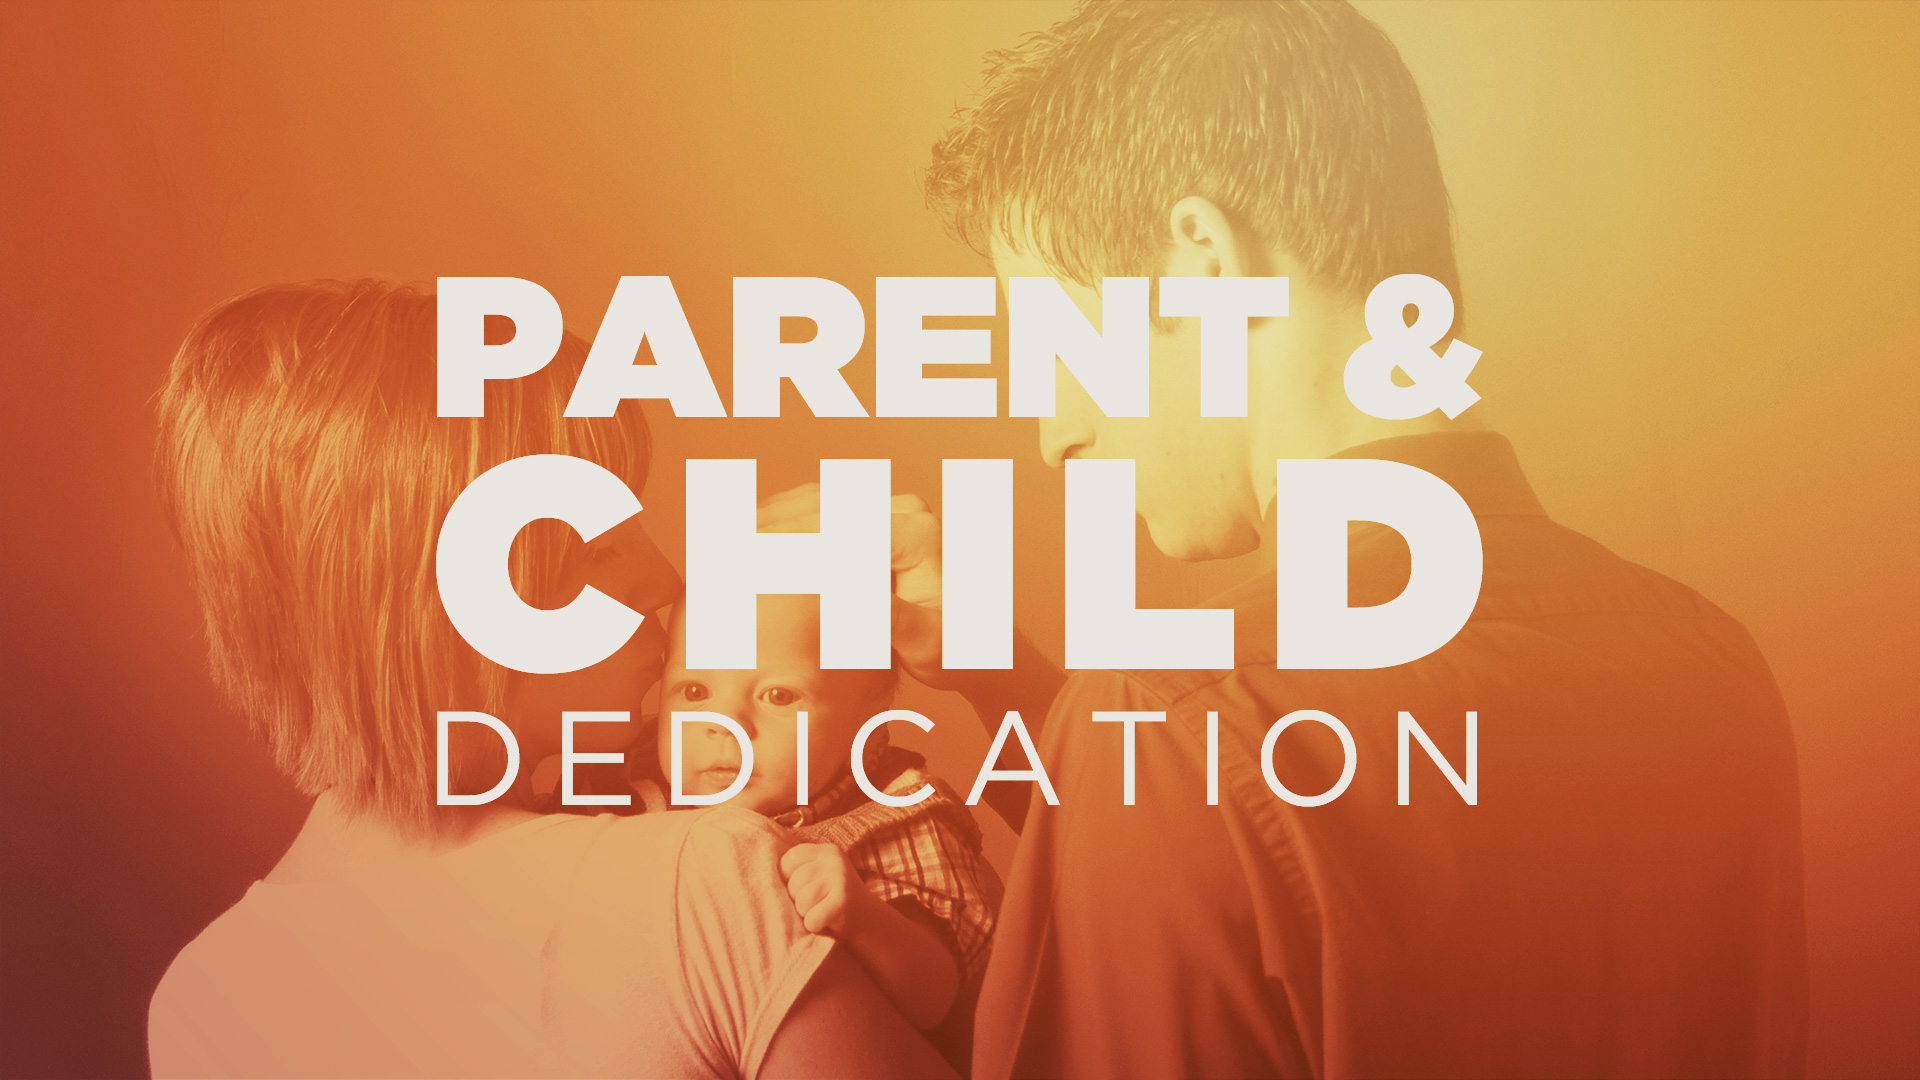 Image: Parent & Child Dedication